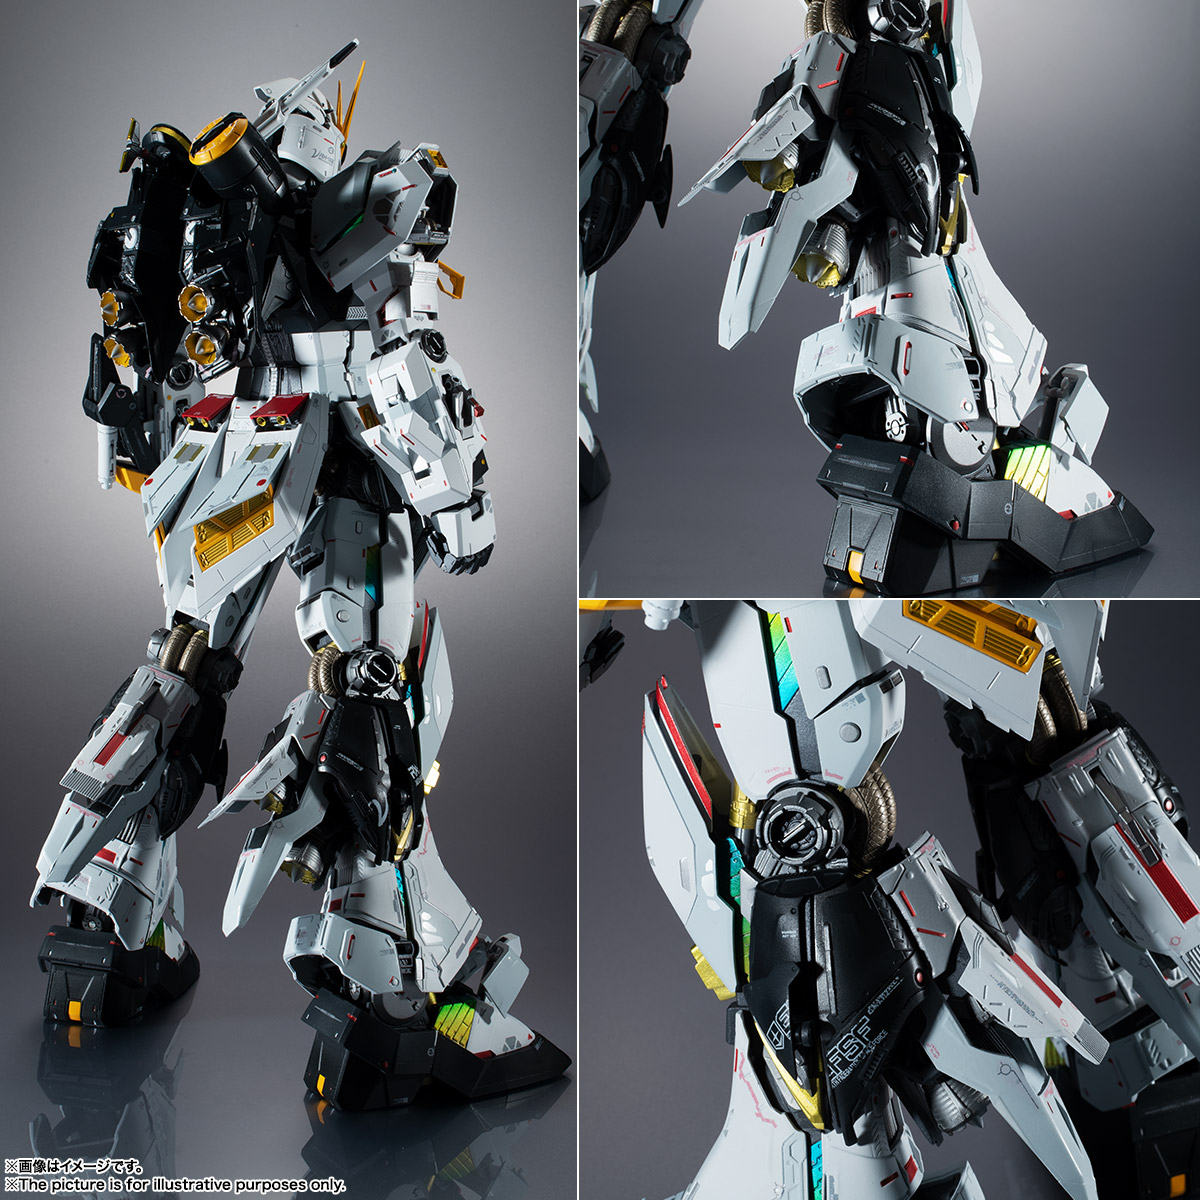 METAL STRUCTURE 解体匠機 RX-93 νガンダム 12